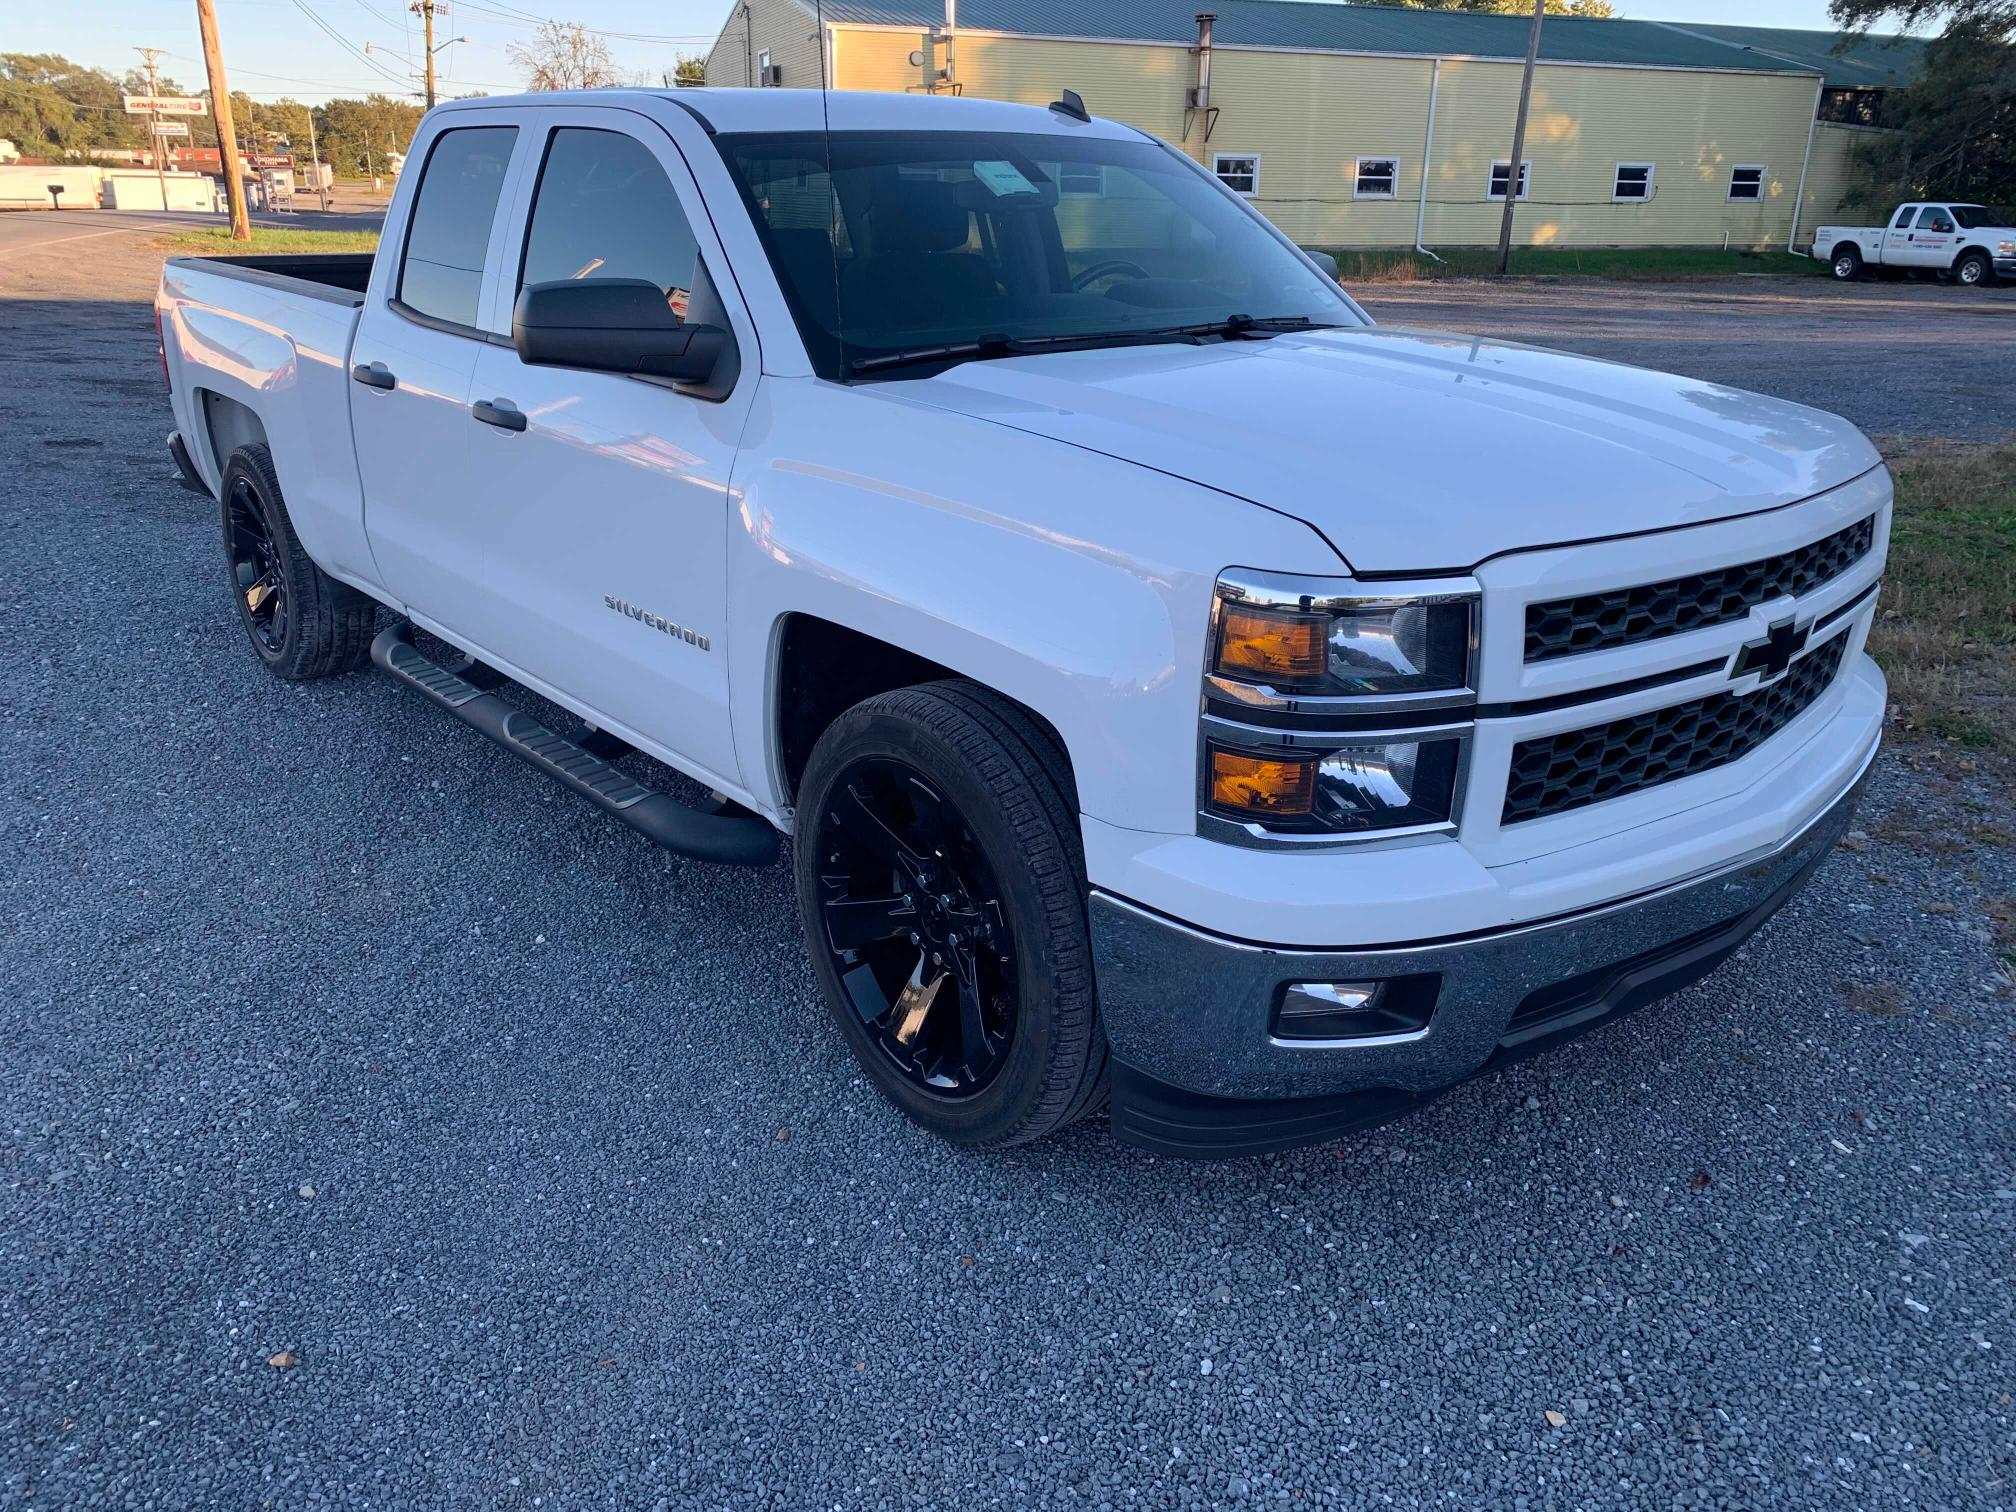 2014 Chevrolet Silverado for sale in Sandston, VA